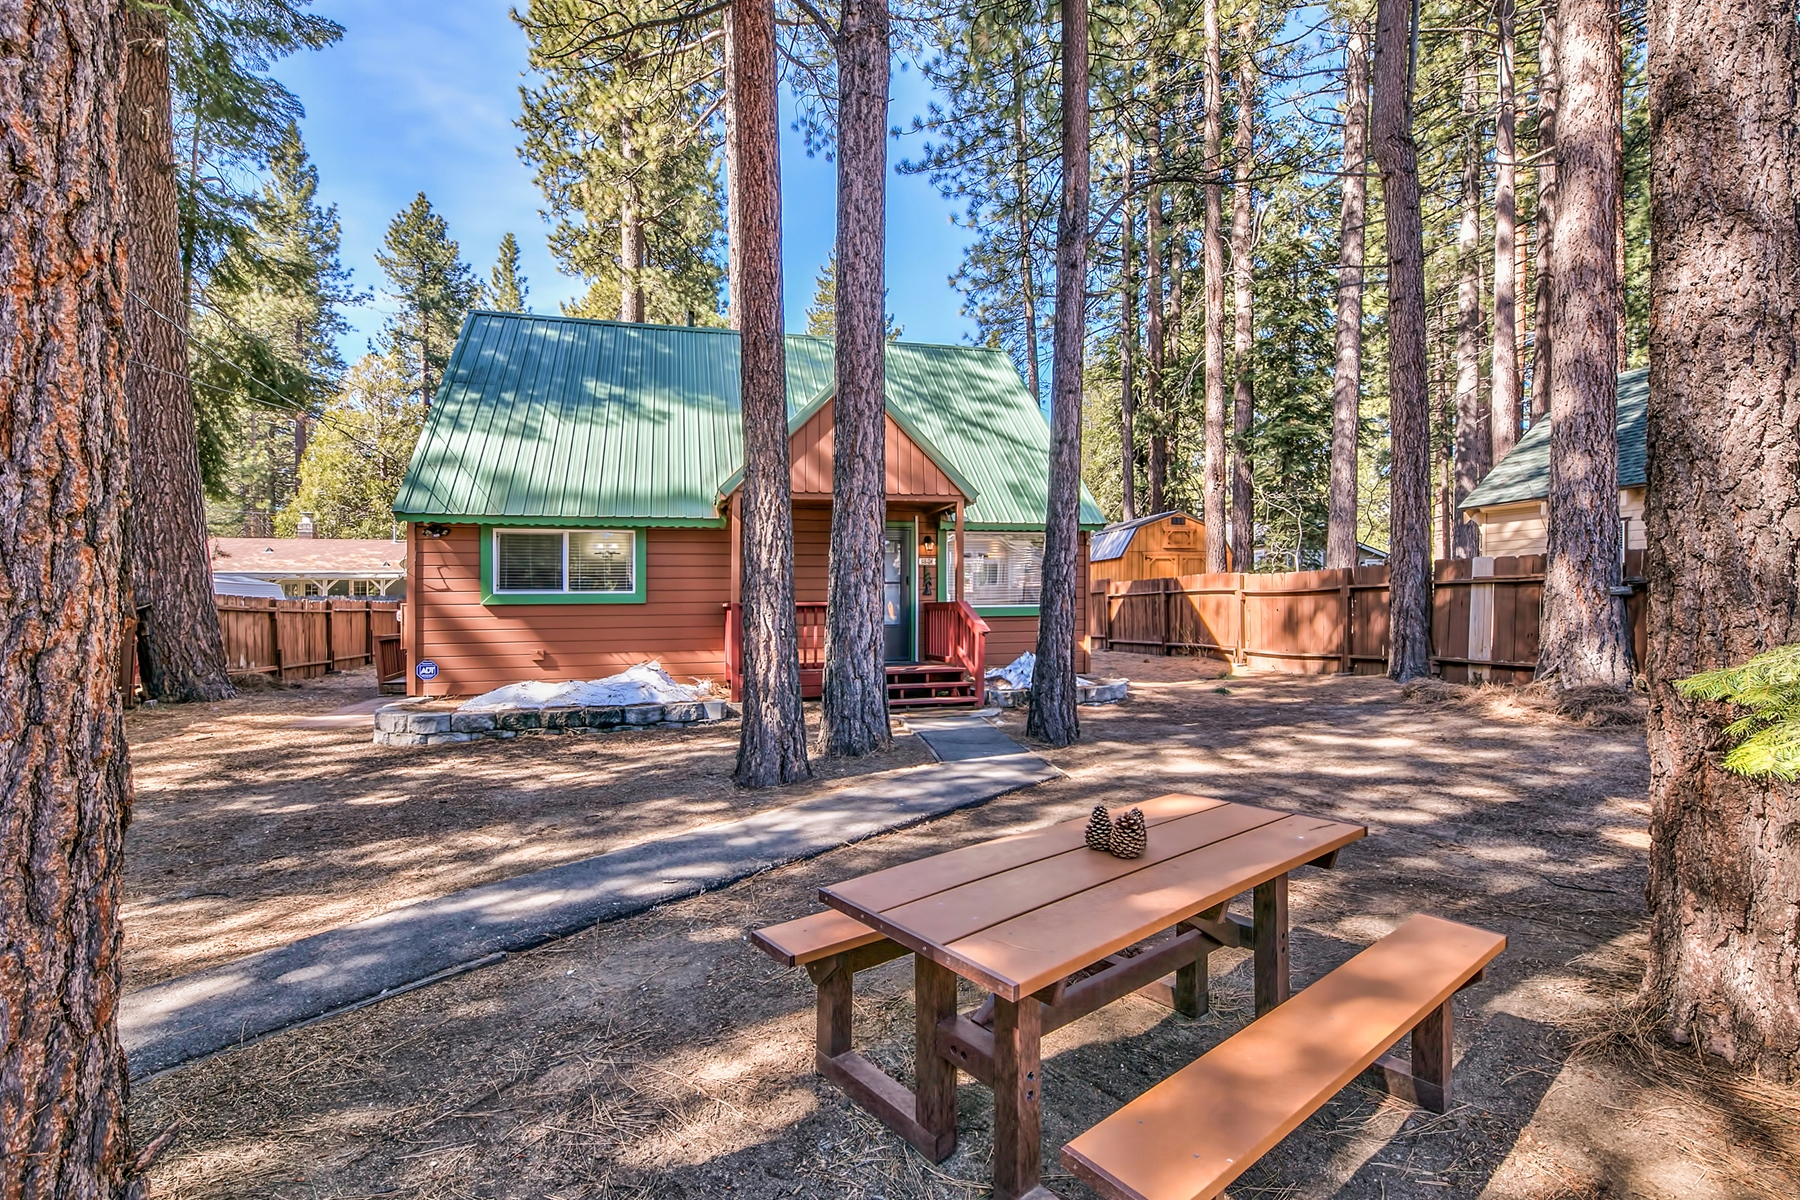 Single Family Homes for Active at 880 Tahoe Island Drive, South Lake Drive, CA 96150 880 Tahoe Island Drive South Lake Tahoe, California 96150 United States